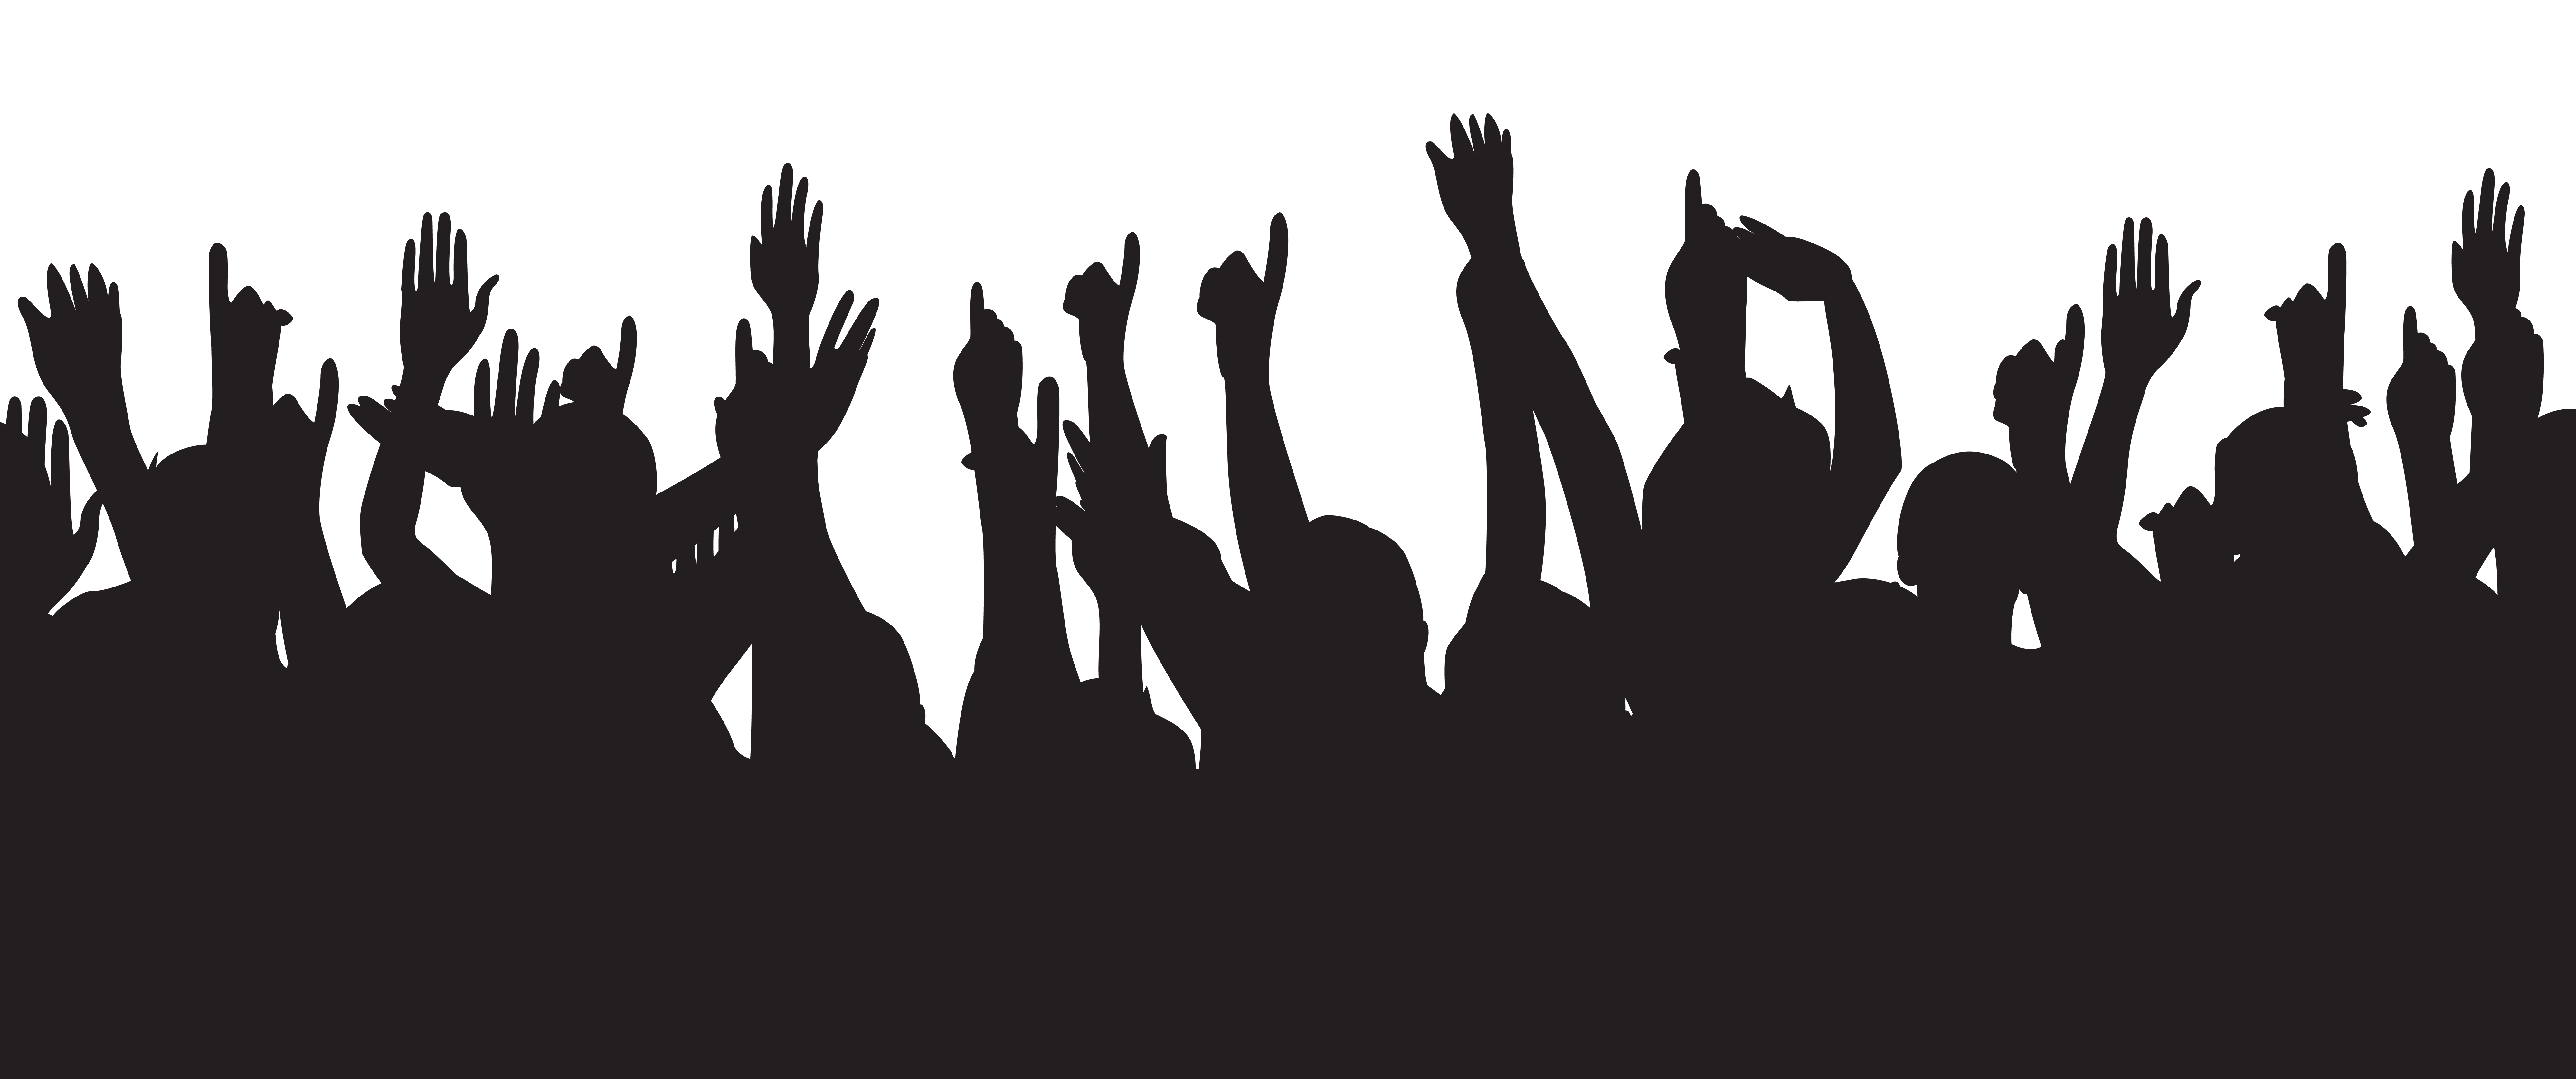 Party clipart silhouette.  collection of people